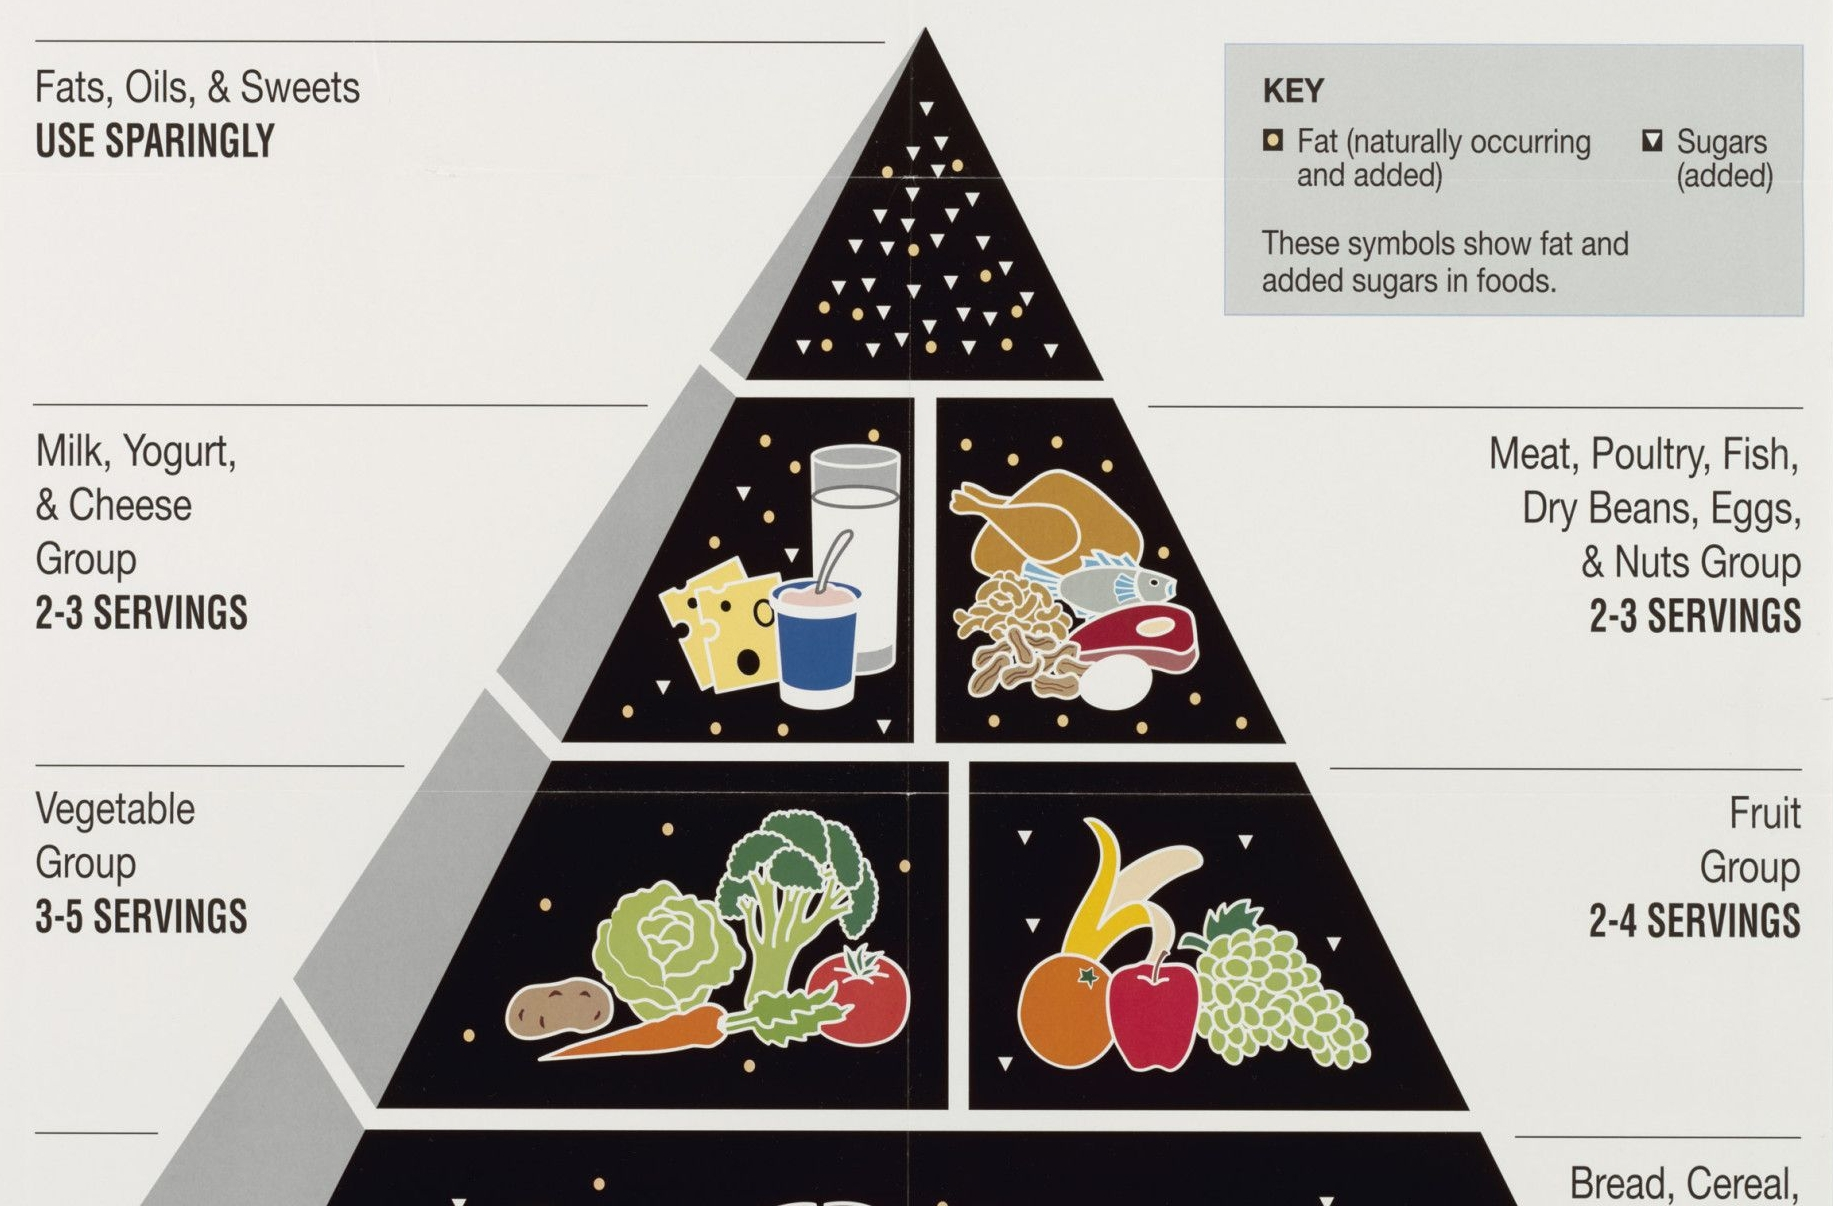 Food Guide Pyramid: A Guide to Daily Food Choices